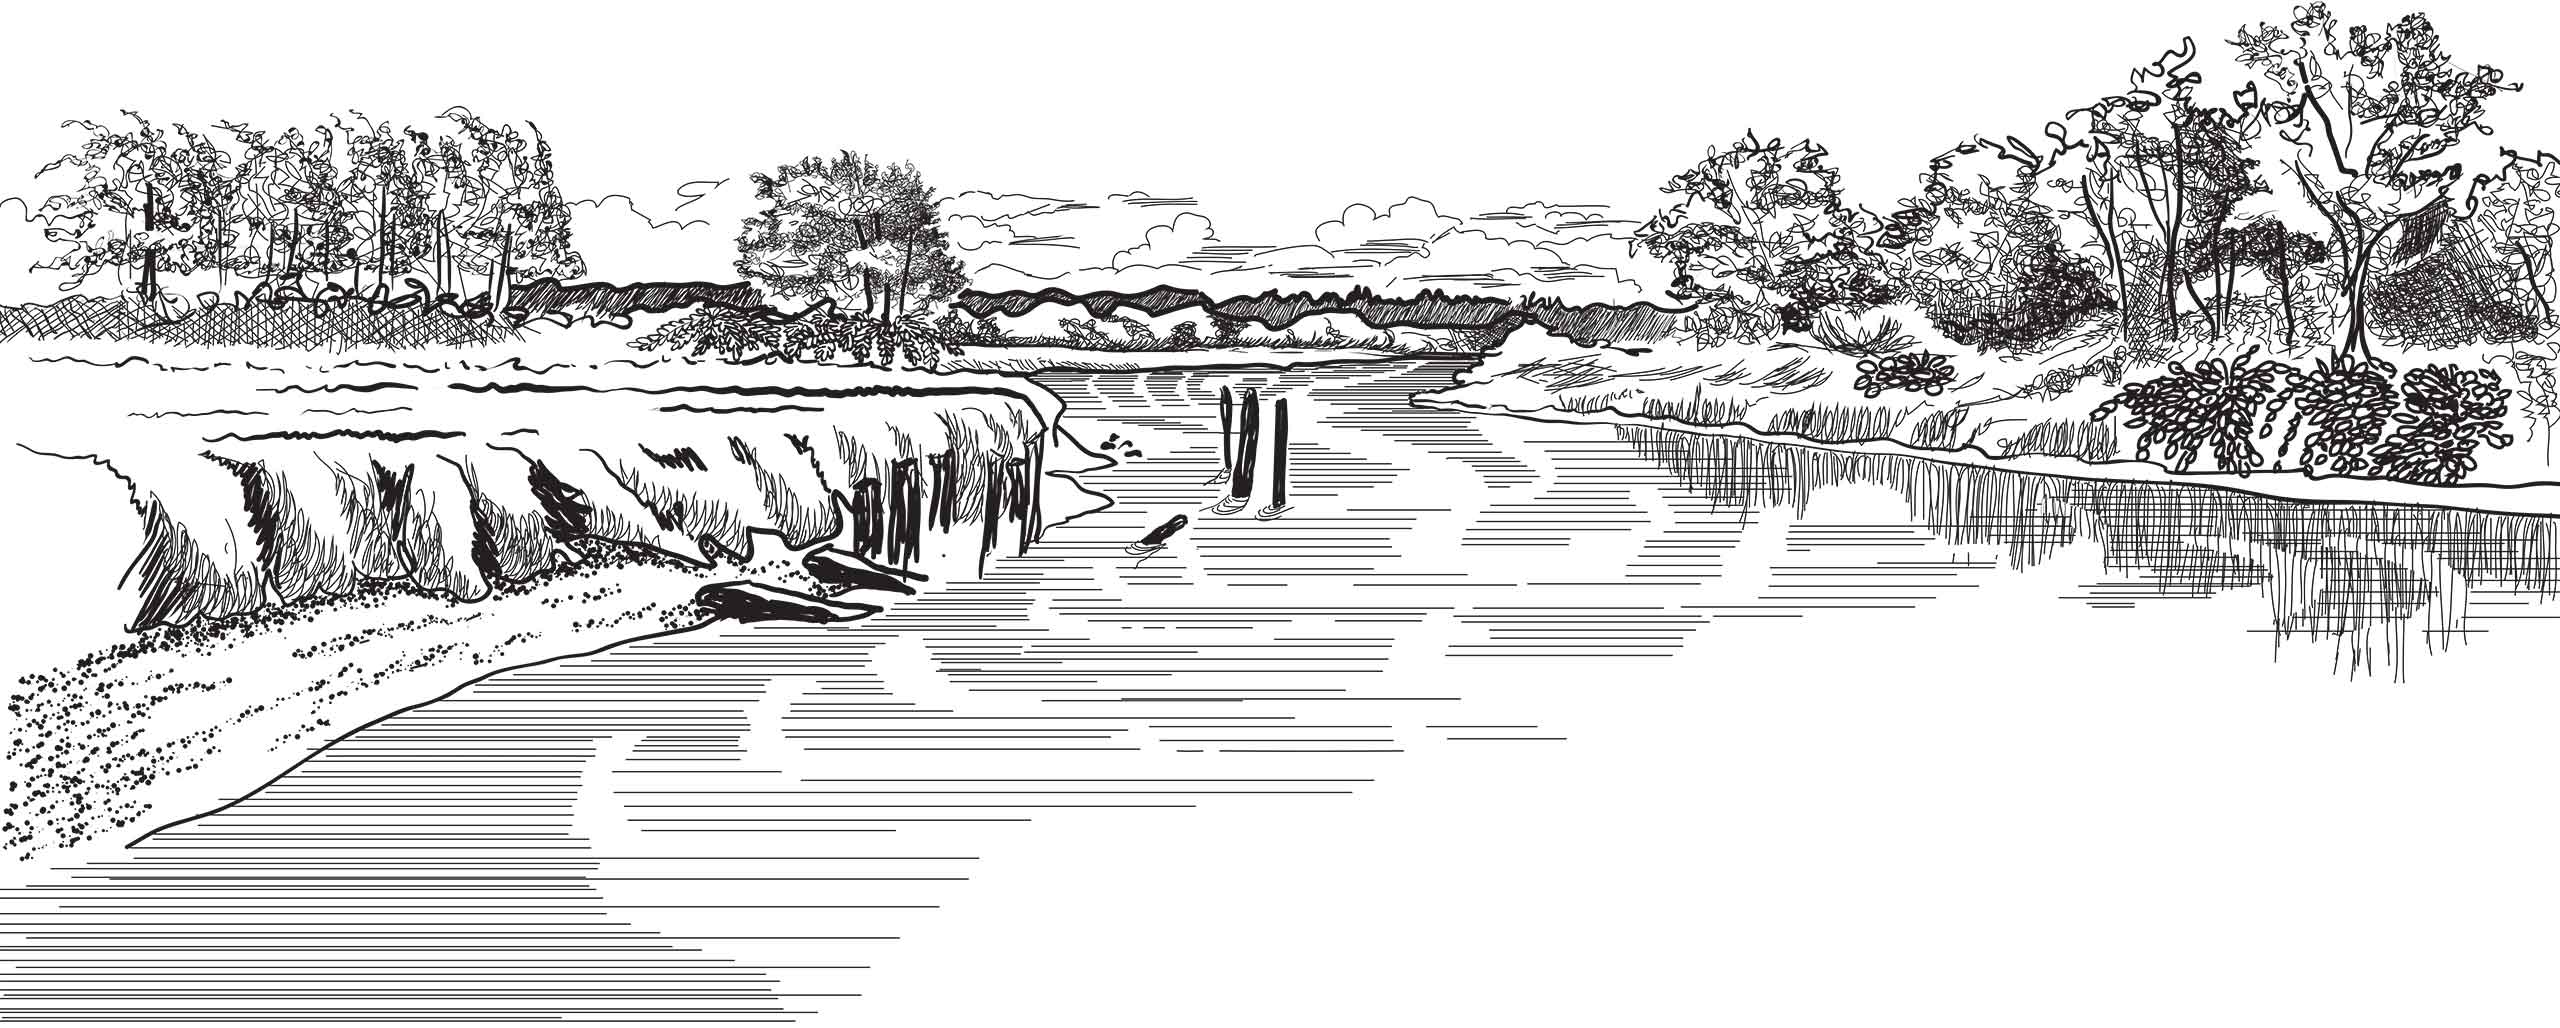 Tulalip Natural Resources Department line art image of forest or wetland area